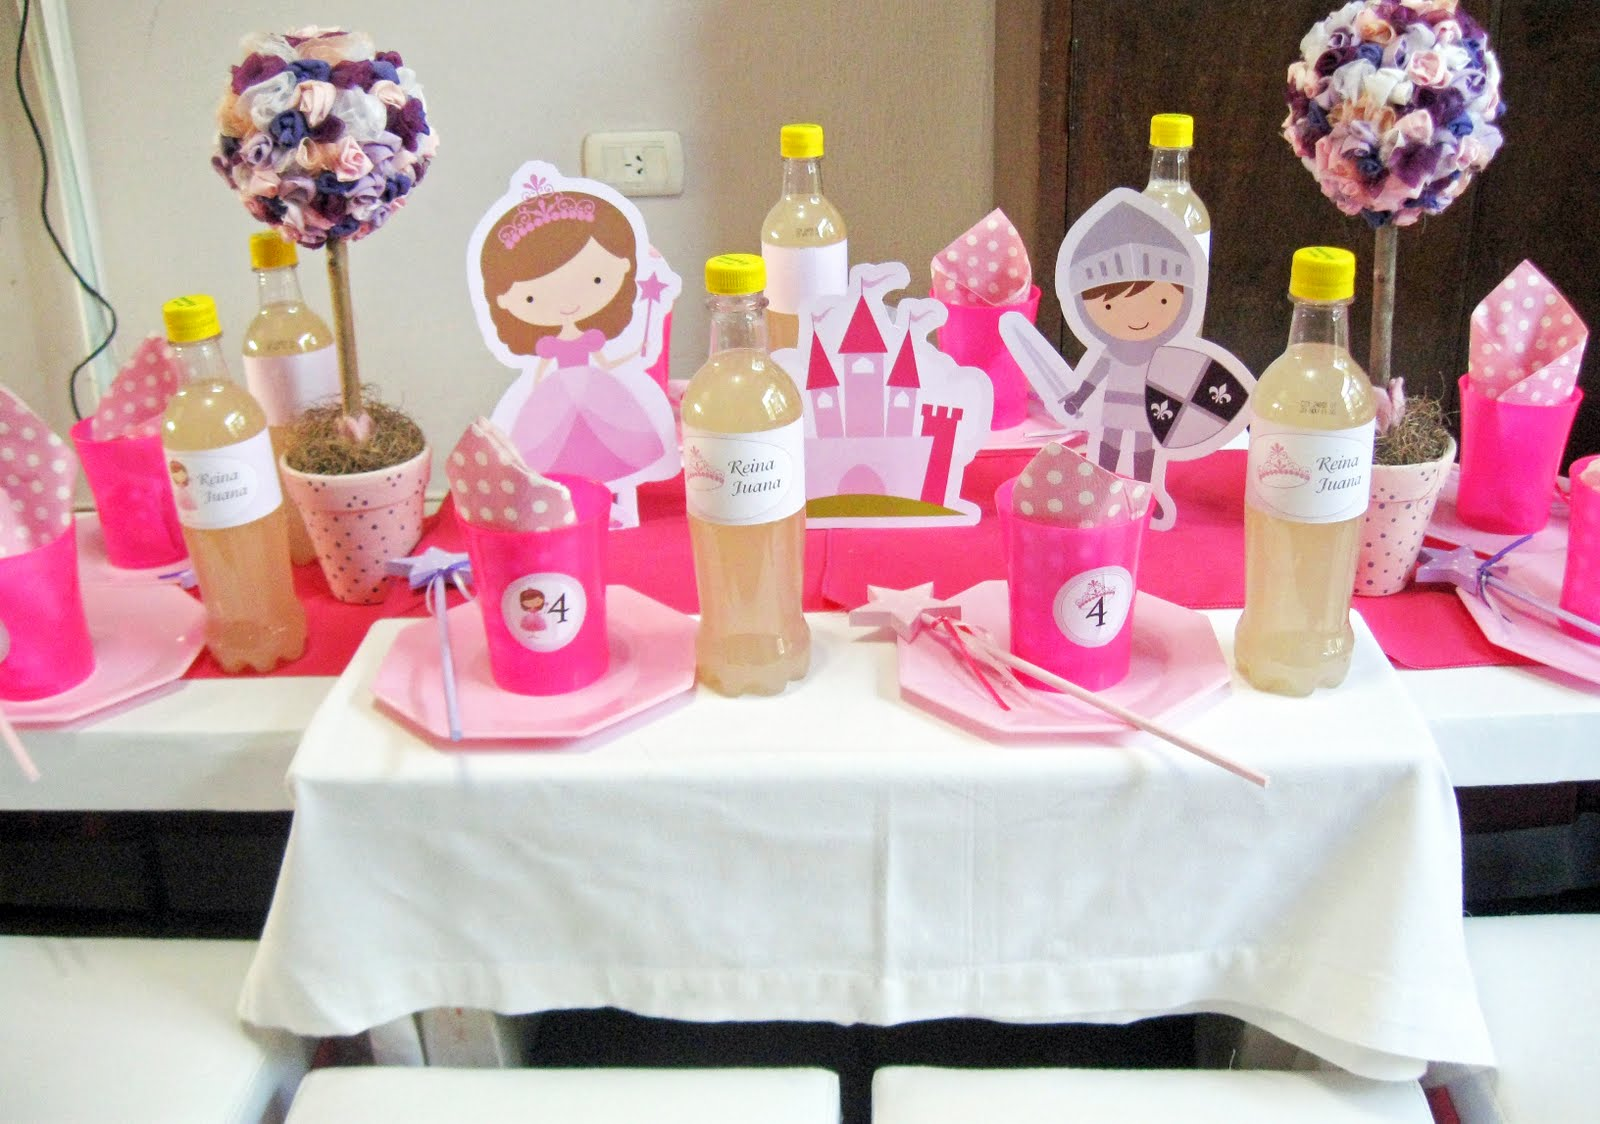 Nslittleshop party decorations and more princess party for Princess dekoration